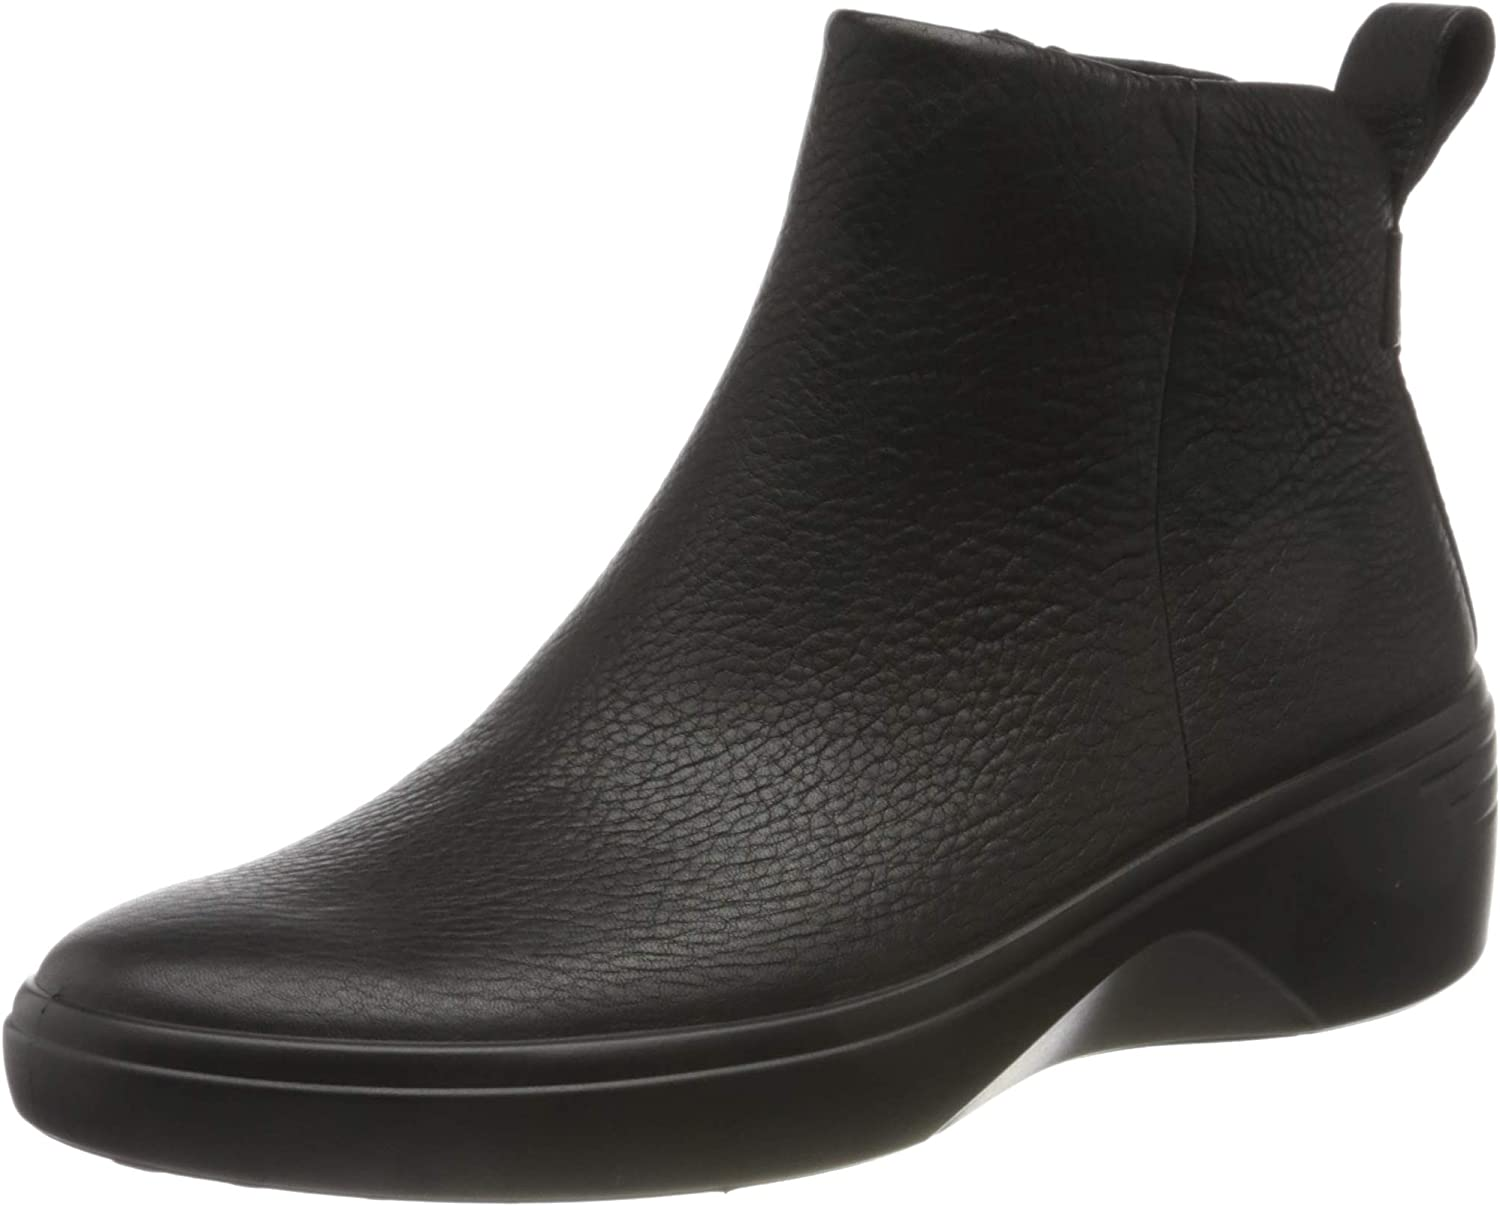 1 year warranty ECCO Popular products Women's Soft 7 Boot Ankle City Wedge